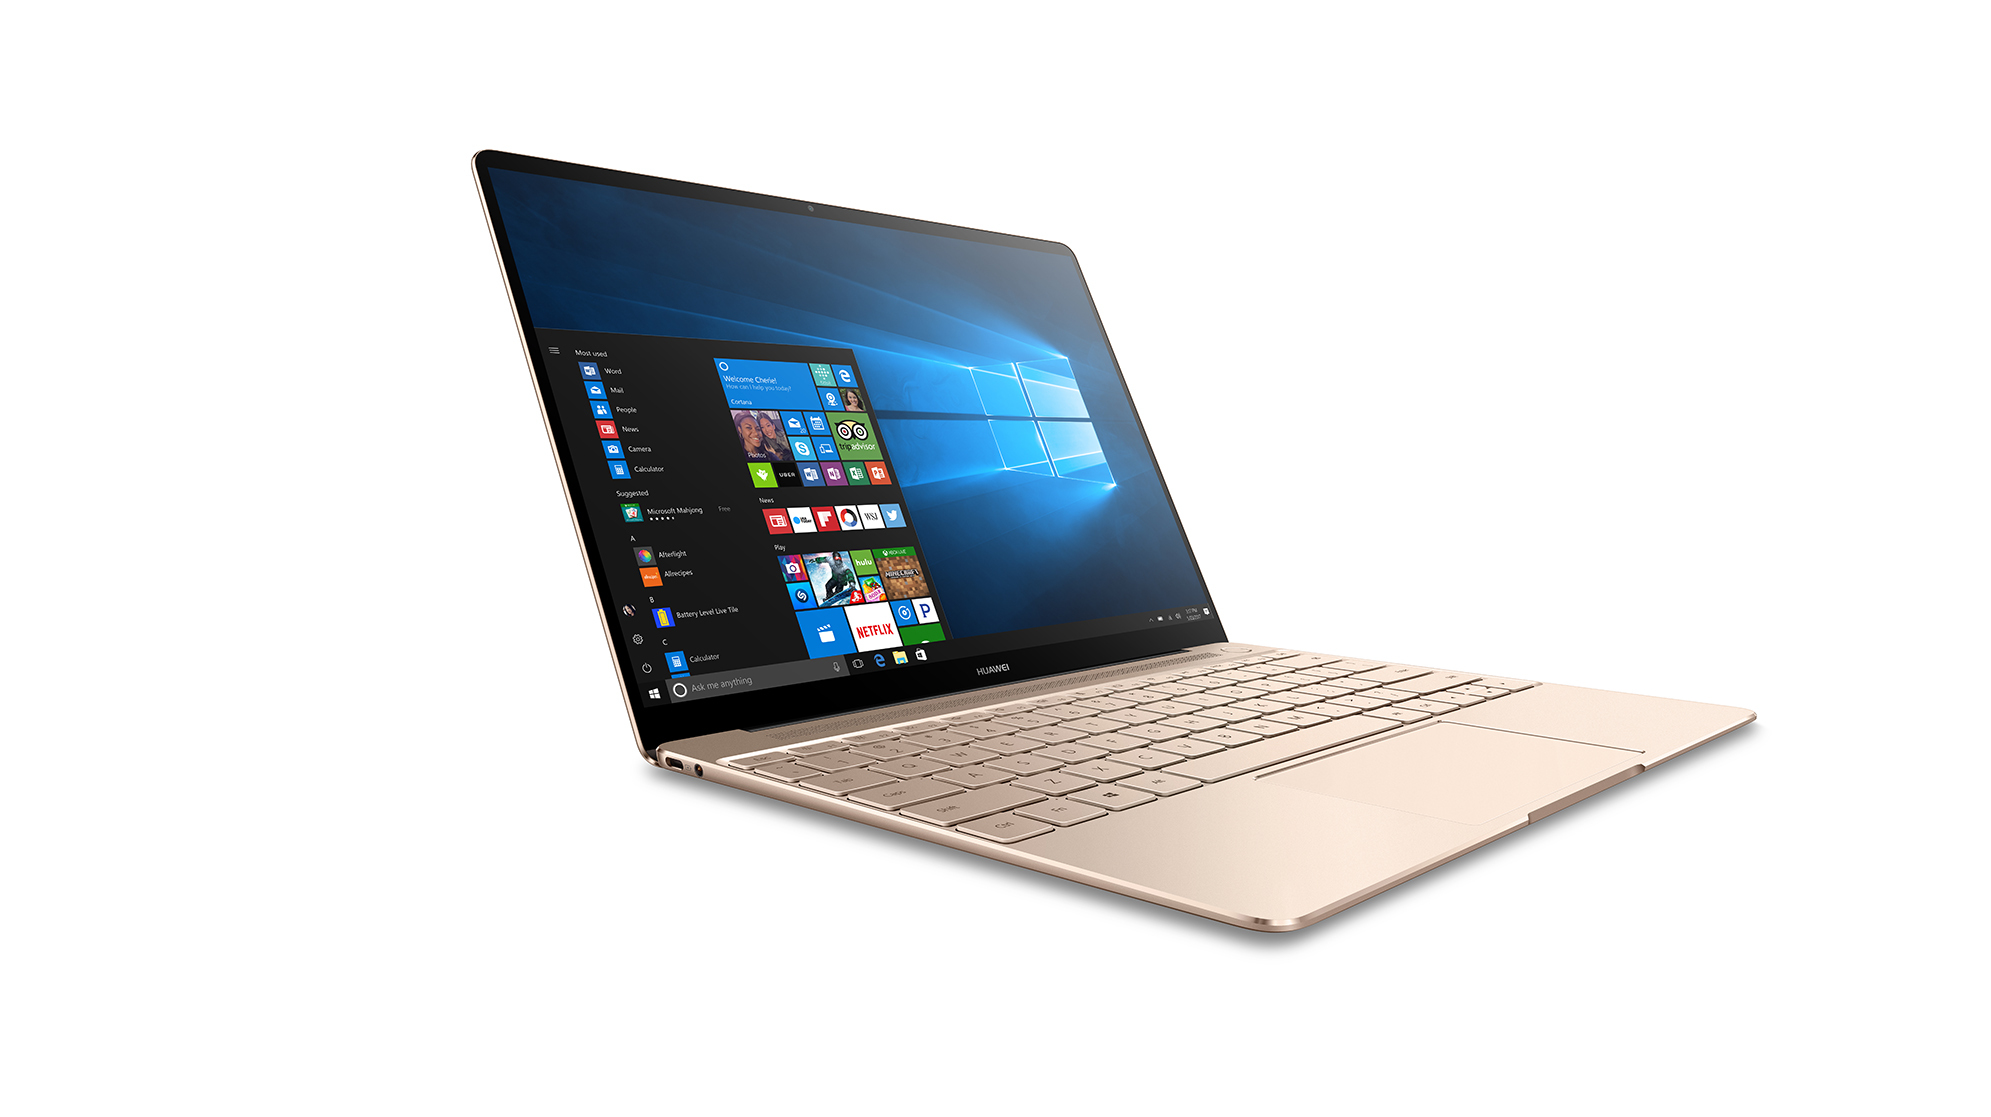 Huawei Announces New MateBook Portable PCs